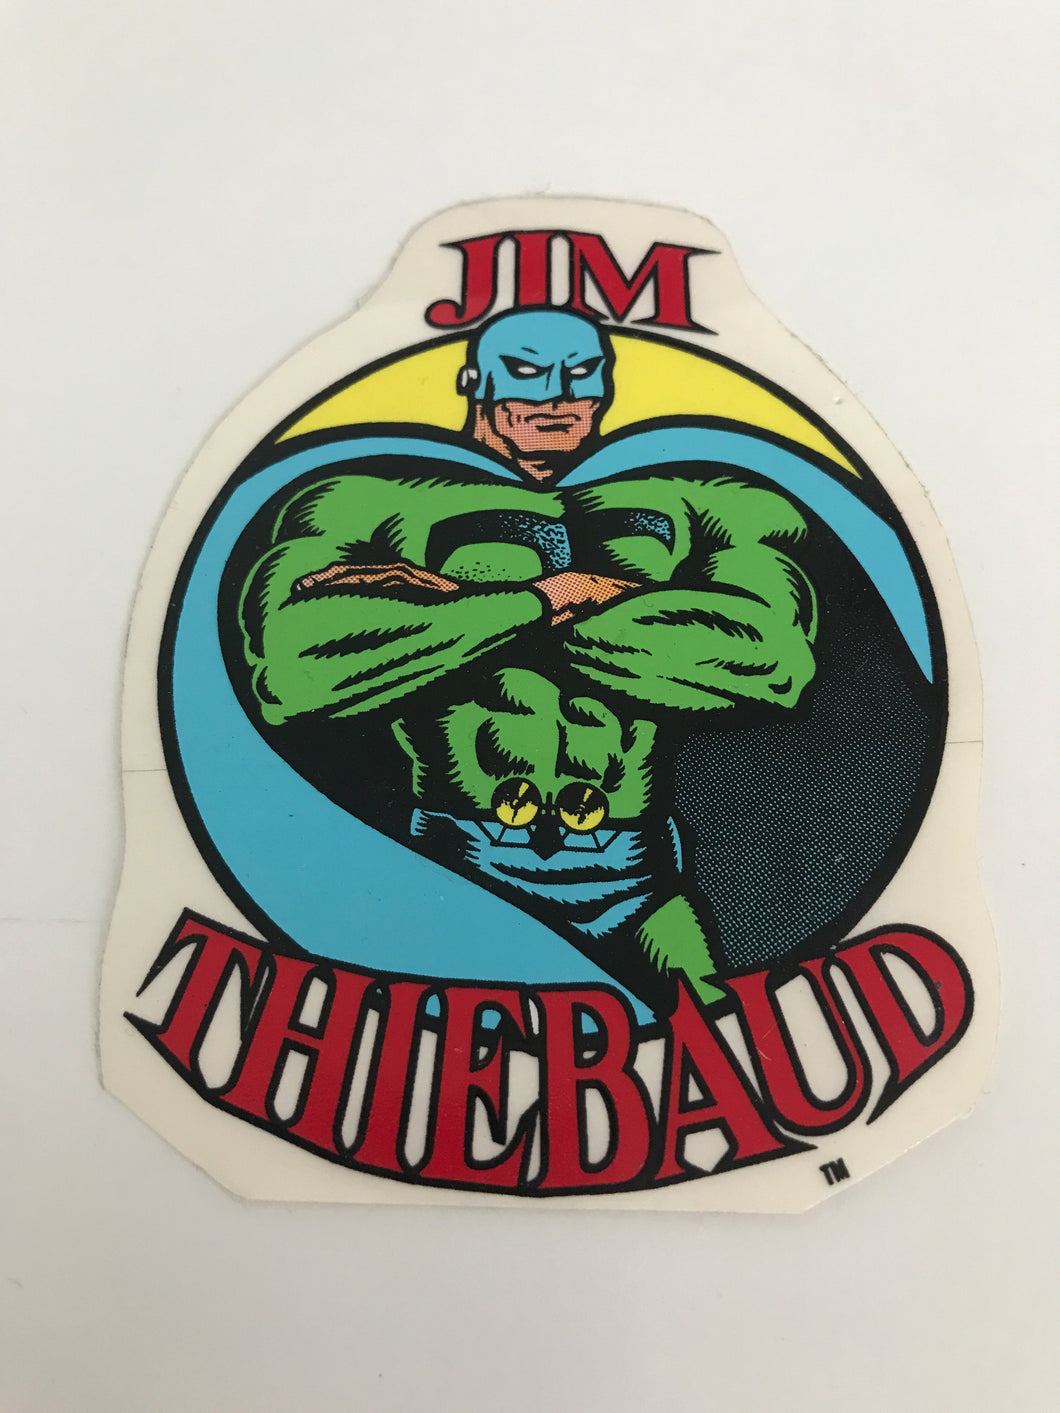 Vintage skateboard SMA Jim Thiebaud sticker